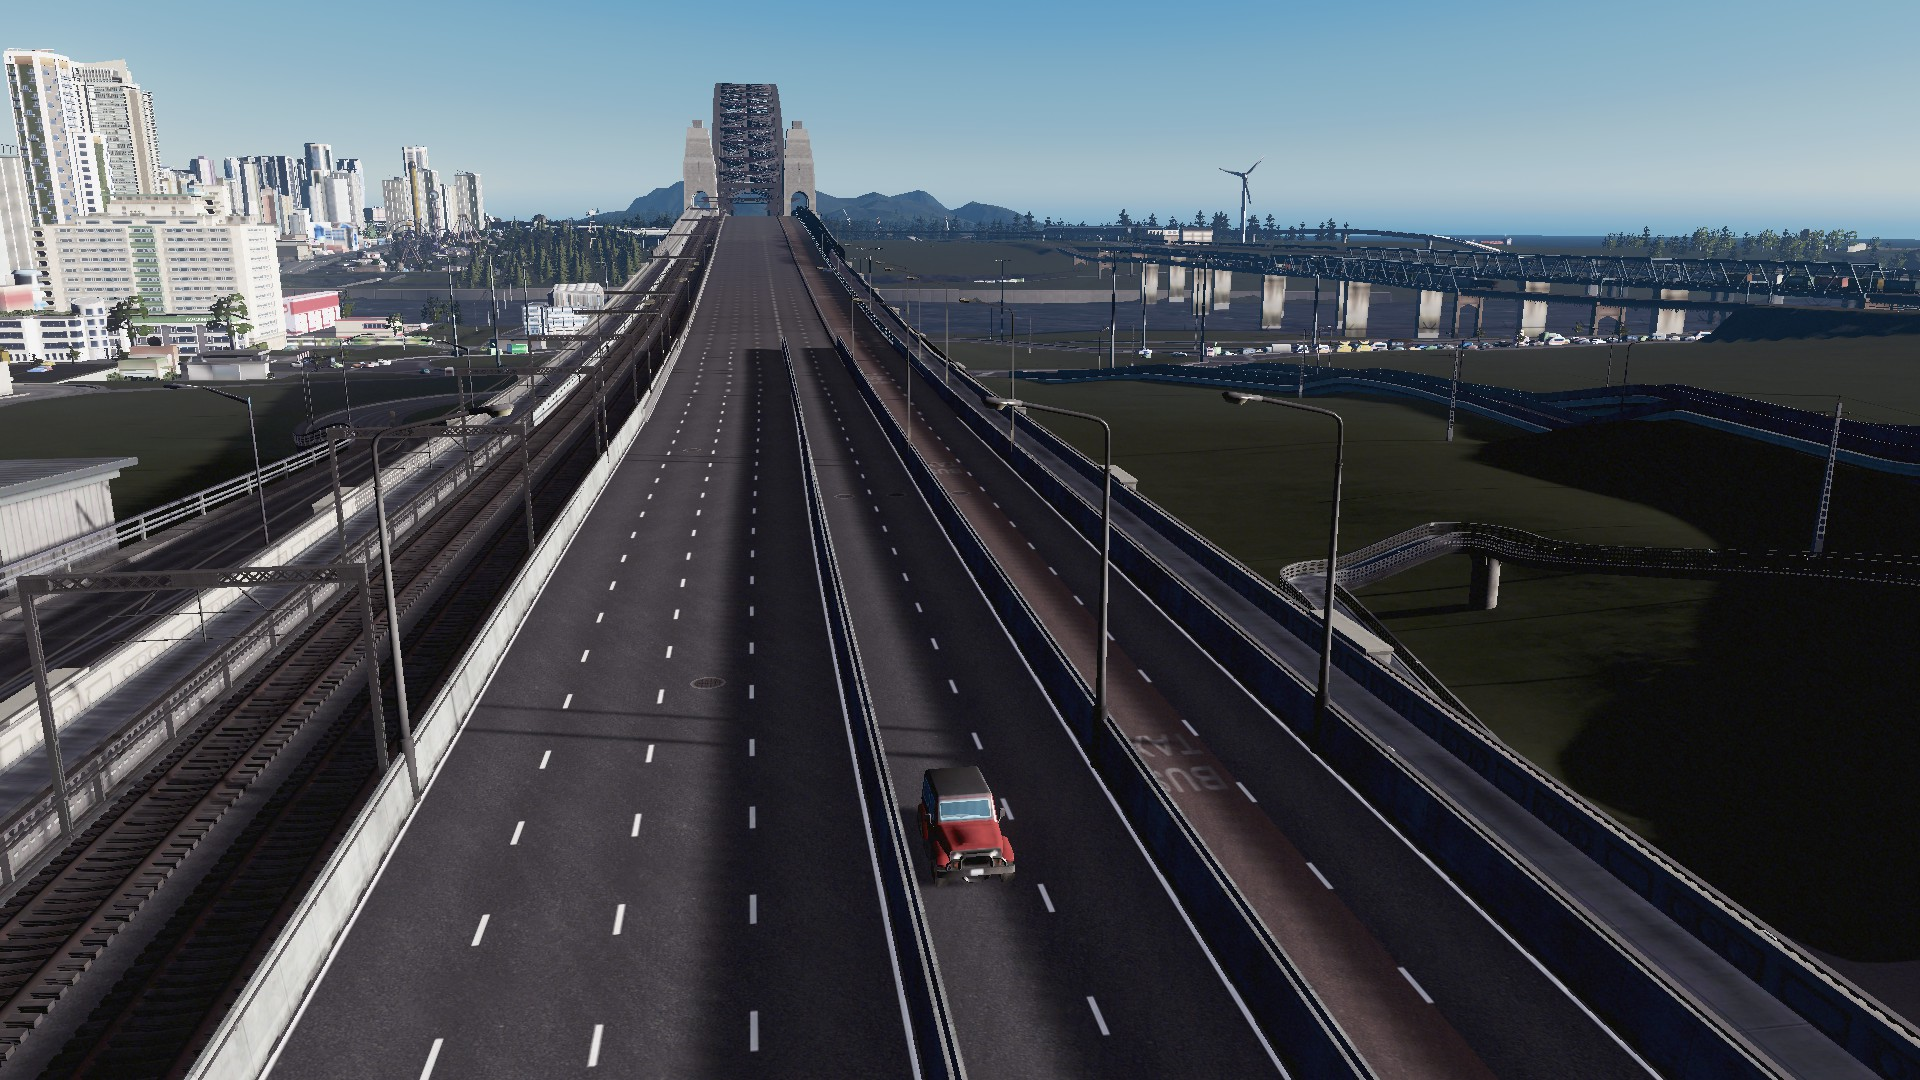 BadPeanut Gives #CitiesSkylines the Sydney Harbour Bridge. I Oblige and Build the Manukau River Bridge